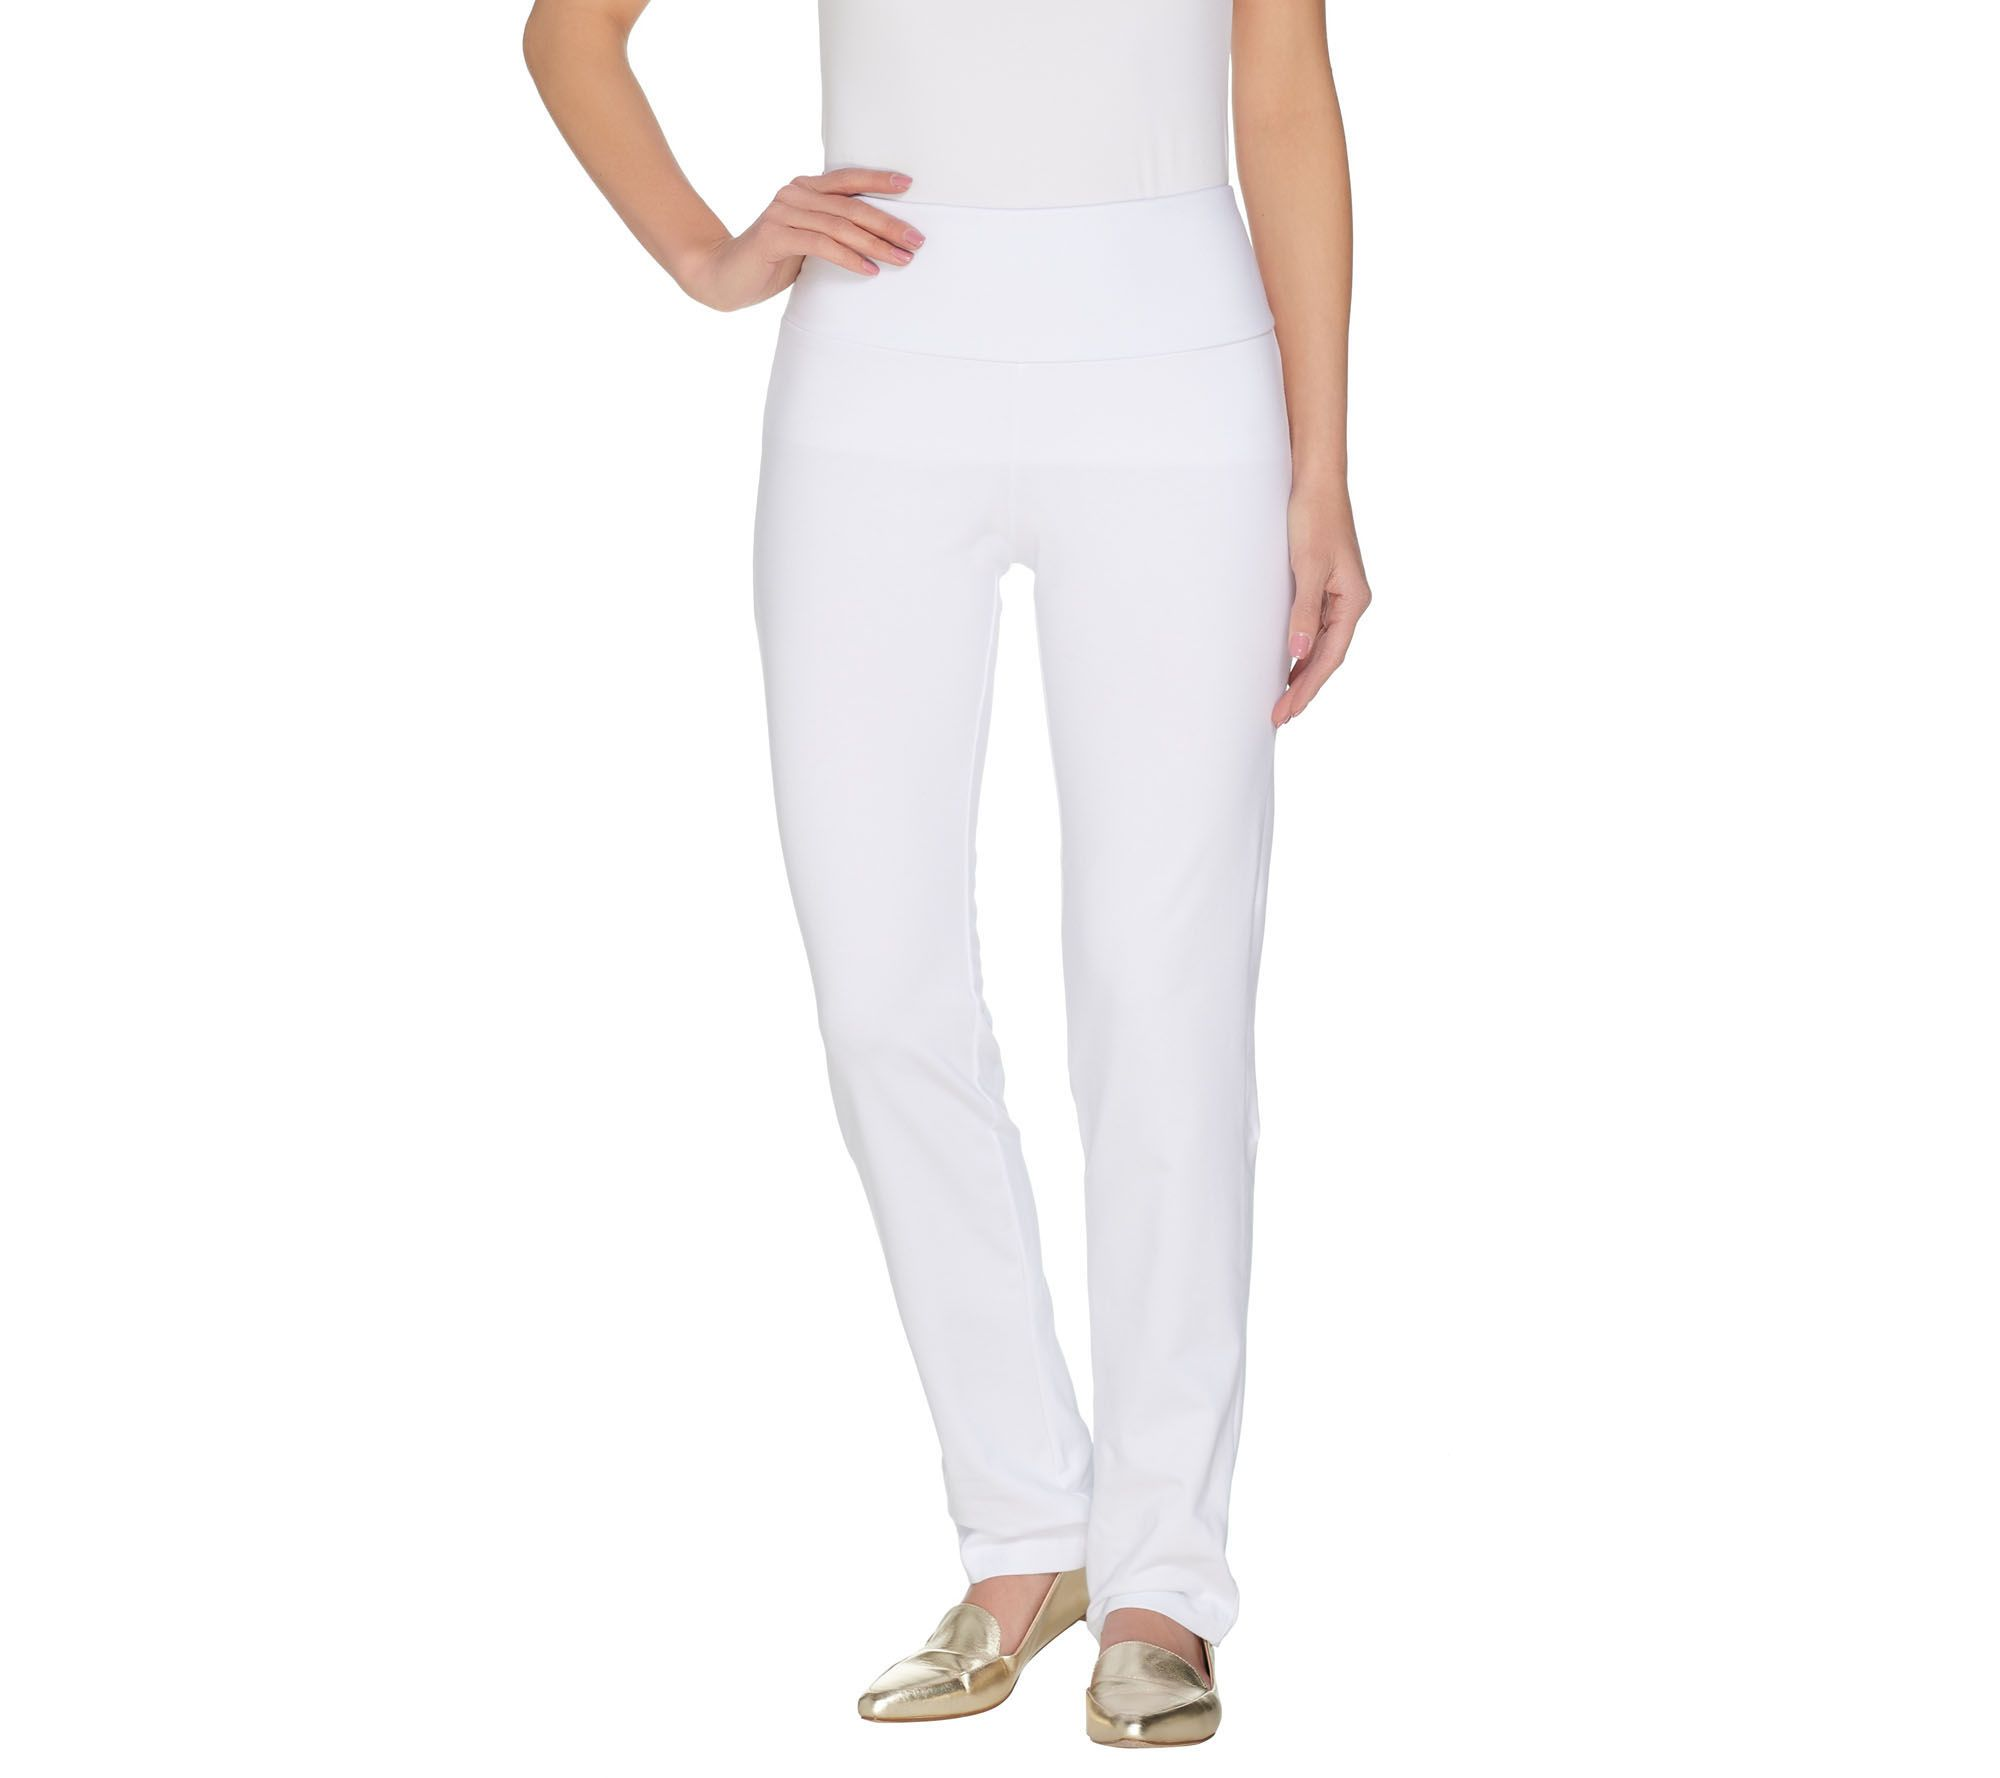 408063d64f Women with Control Regular Slim Leg Pants w Tummy Control - Page 1 ...